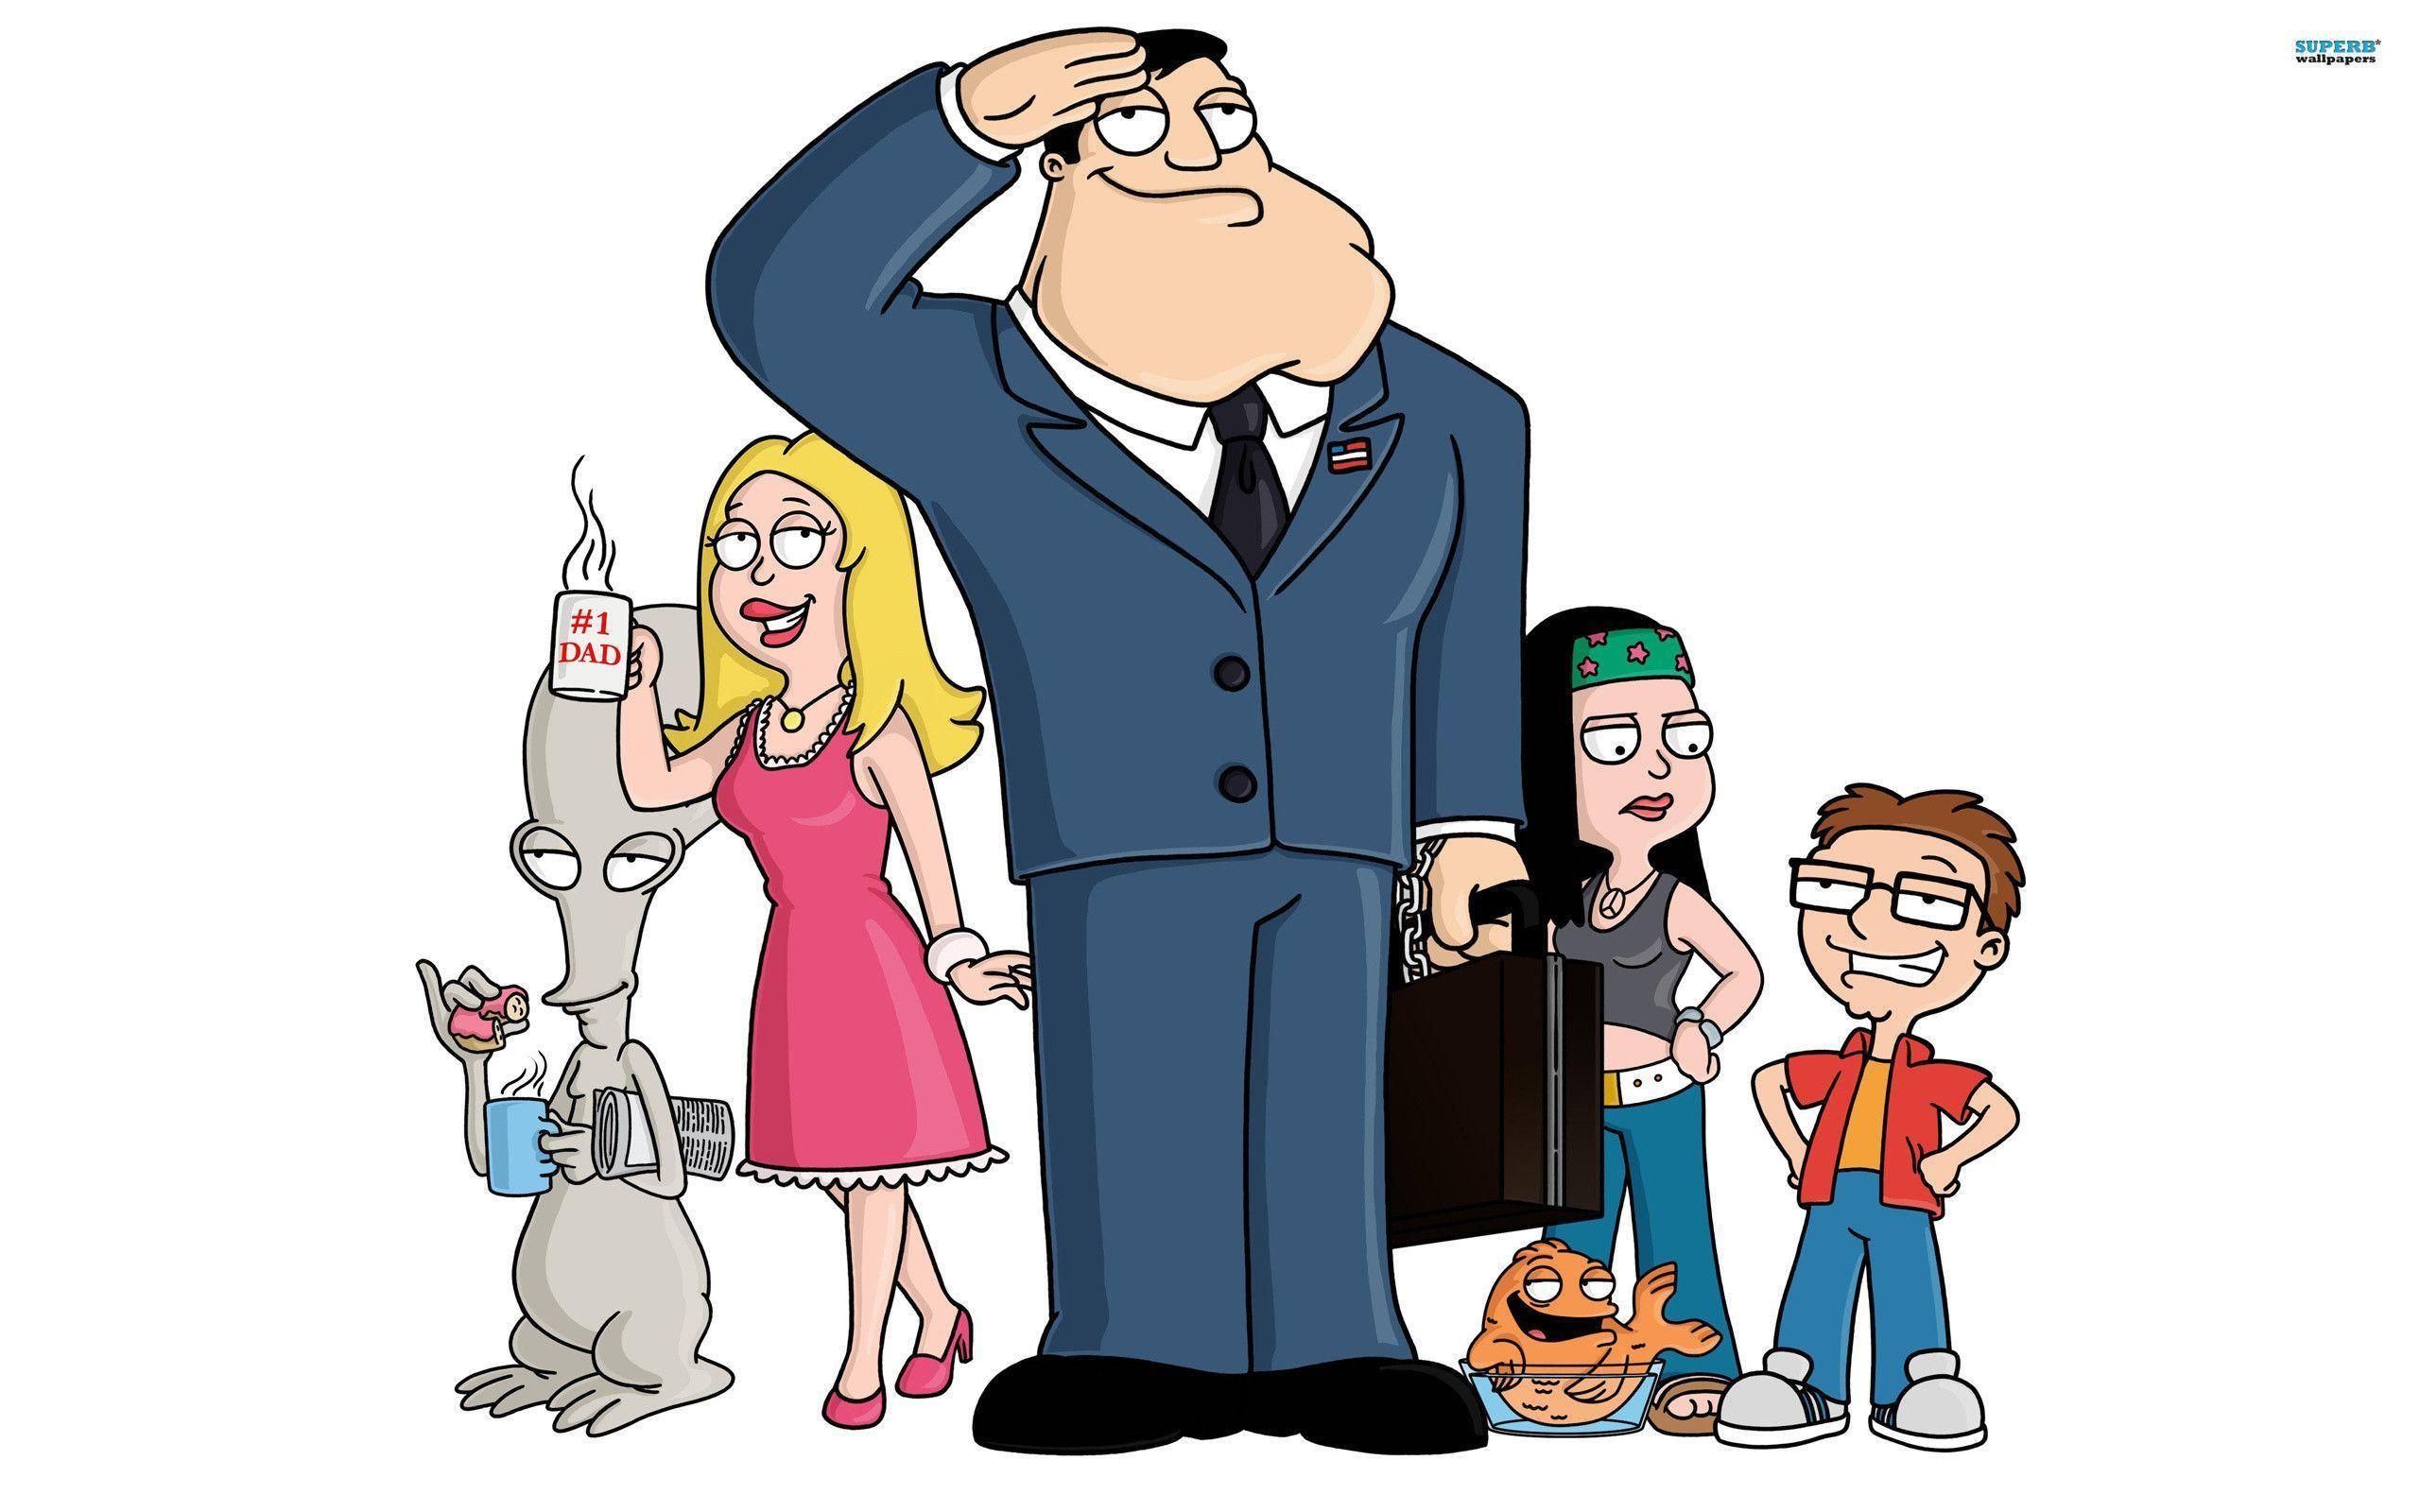 American Dad Hd Wide Wallpaper 39934 in Movies - Telusers.com